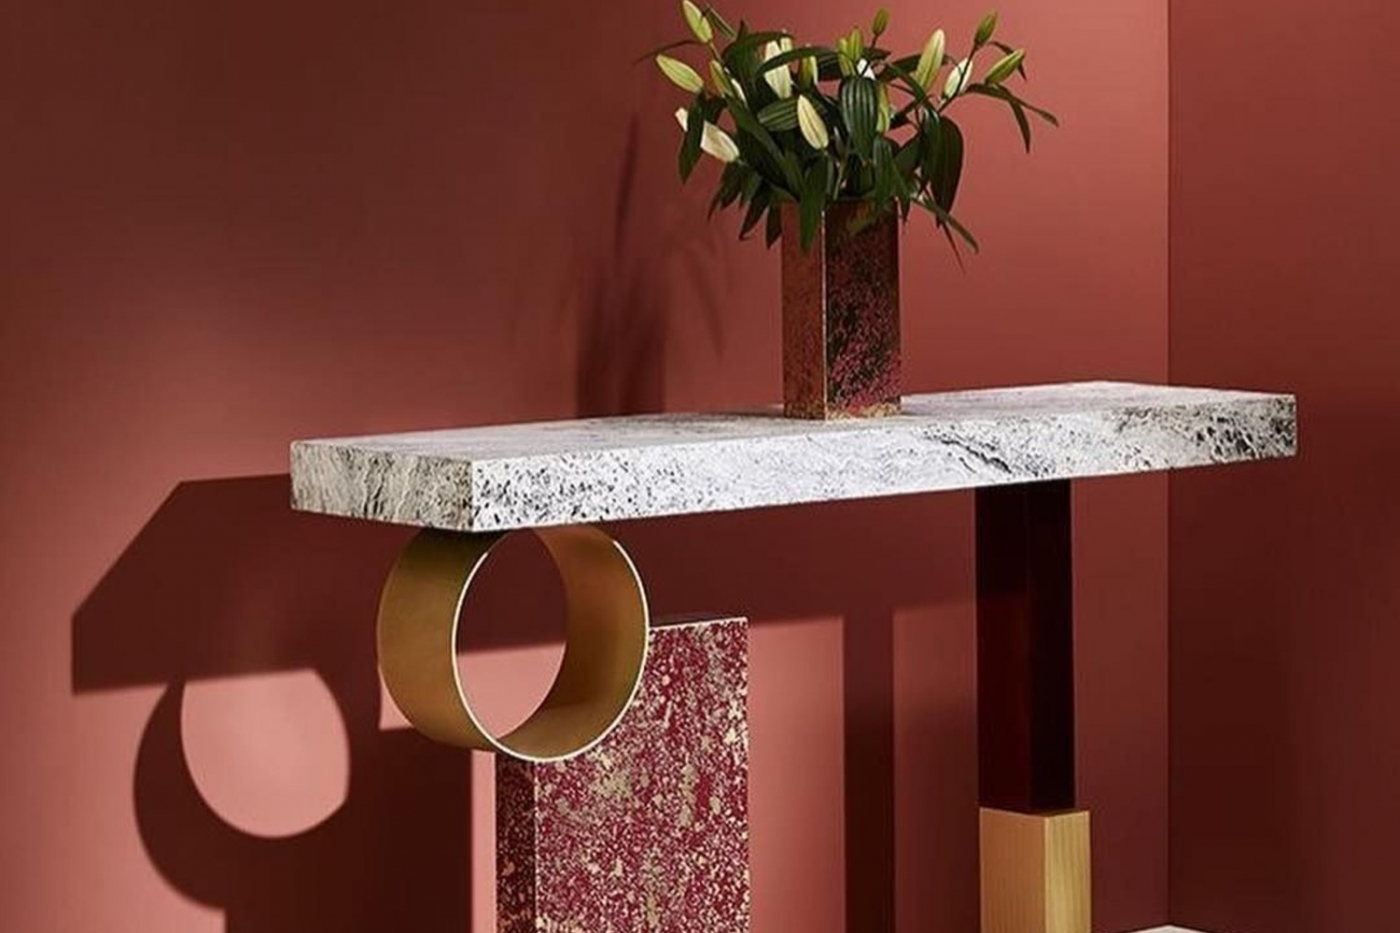 The Coolest Console Tables Designs of The Moment ft console tables The Coolest Console Tables Designs of The Moment The Coolest Console Tables Designs of The Moment ft 1400x933